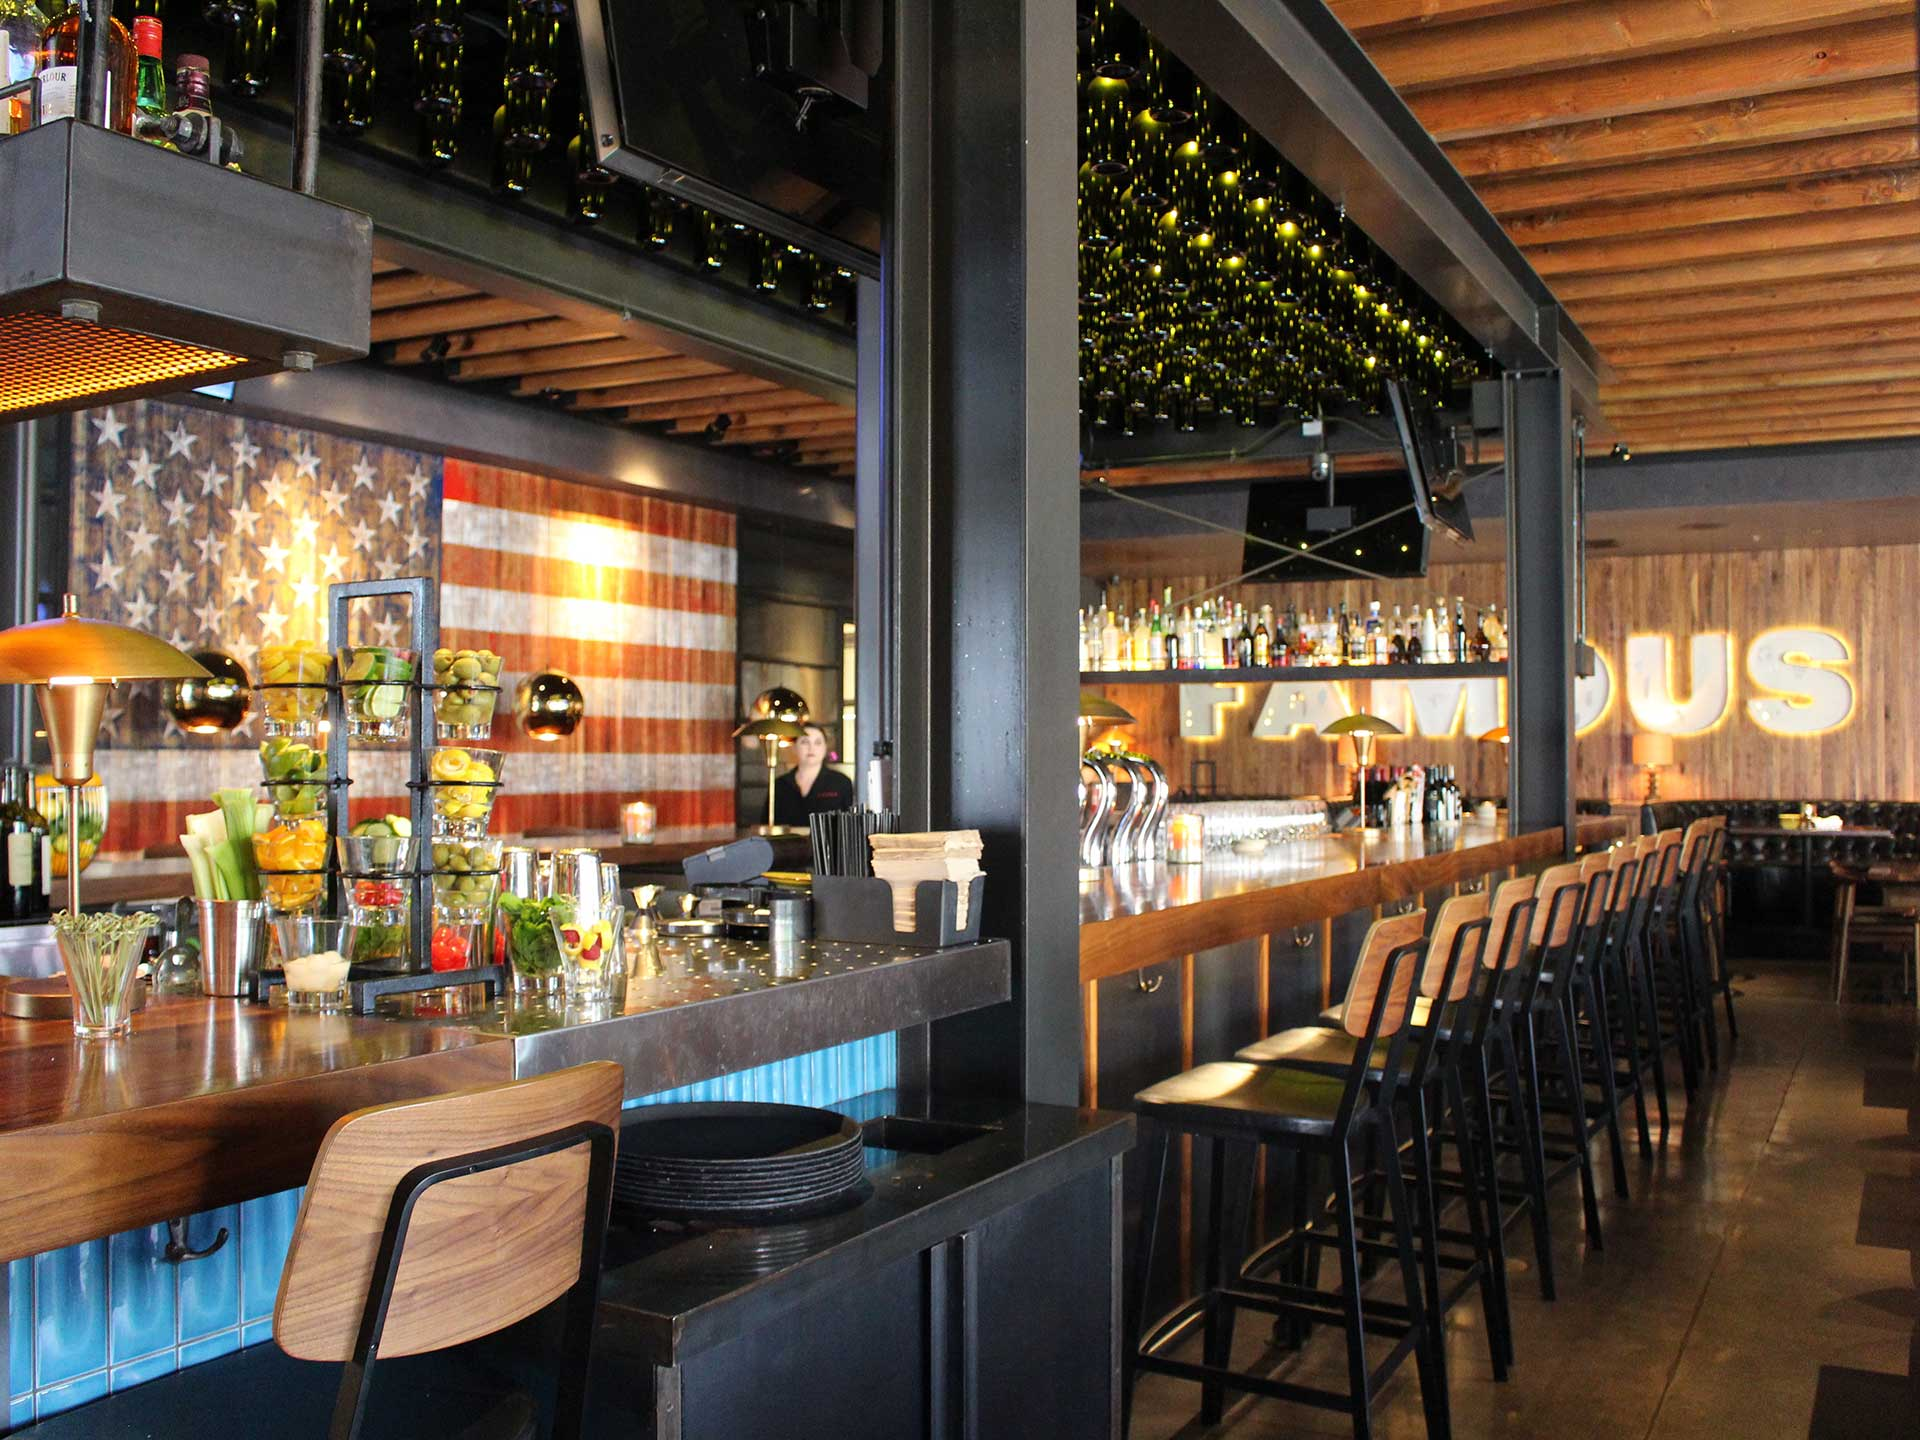 Jimmy's Brea bar offers a variety of craft cocktails and local taps